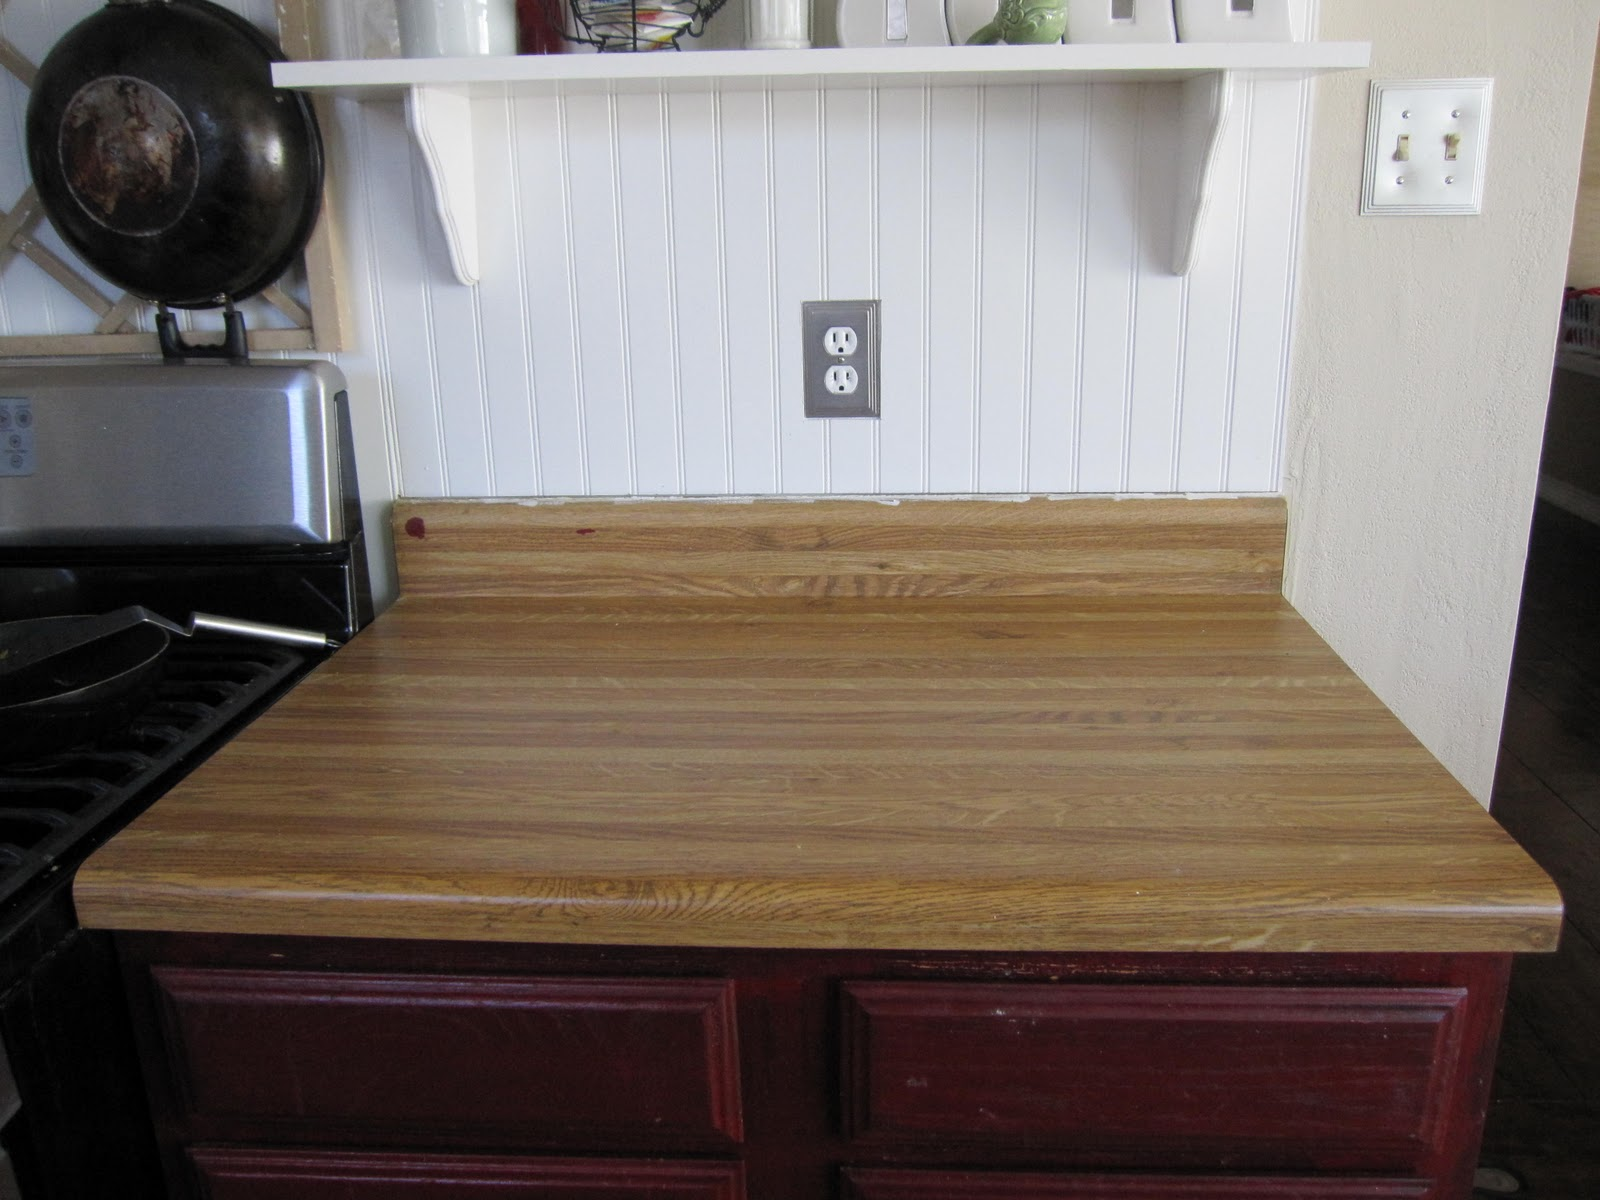 Allen And Roth Countertops Breakfast For Dinner Faux Butcher Block Conter Top Tutorial